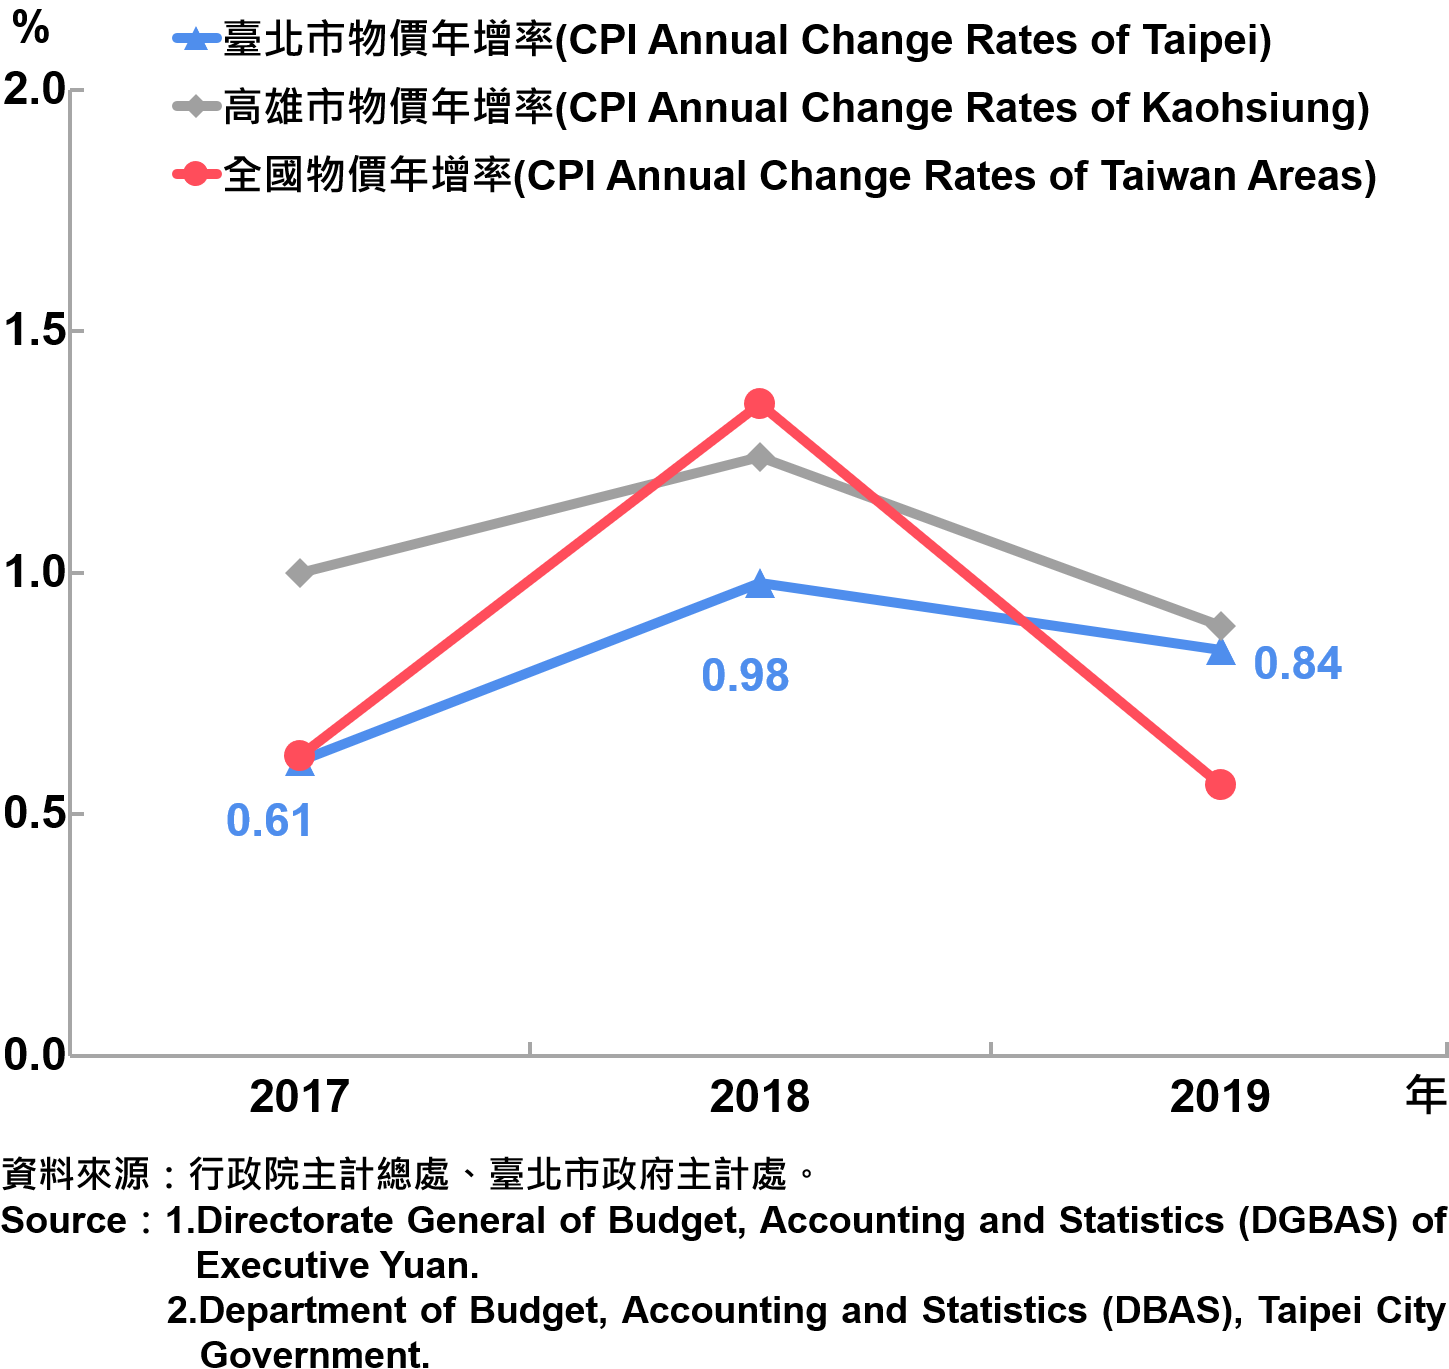 臺北市消費者物價指數(CPI)年增率—2019 Annual Growth Rate of CPI in Taipei City—2019